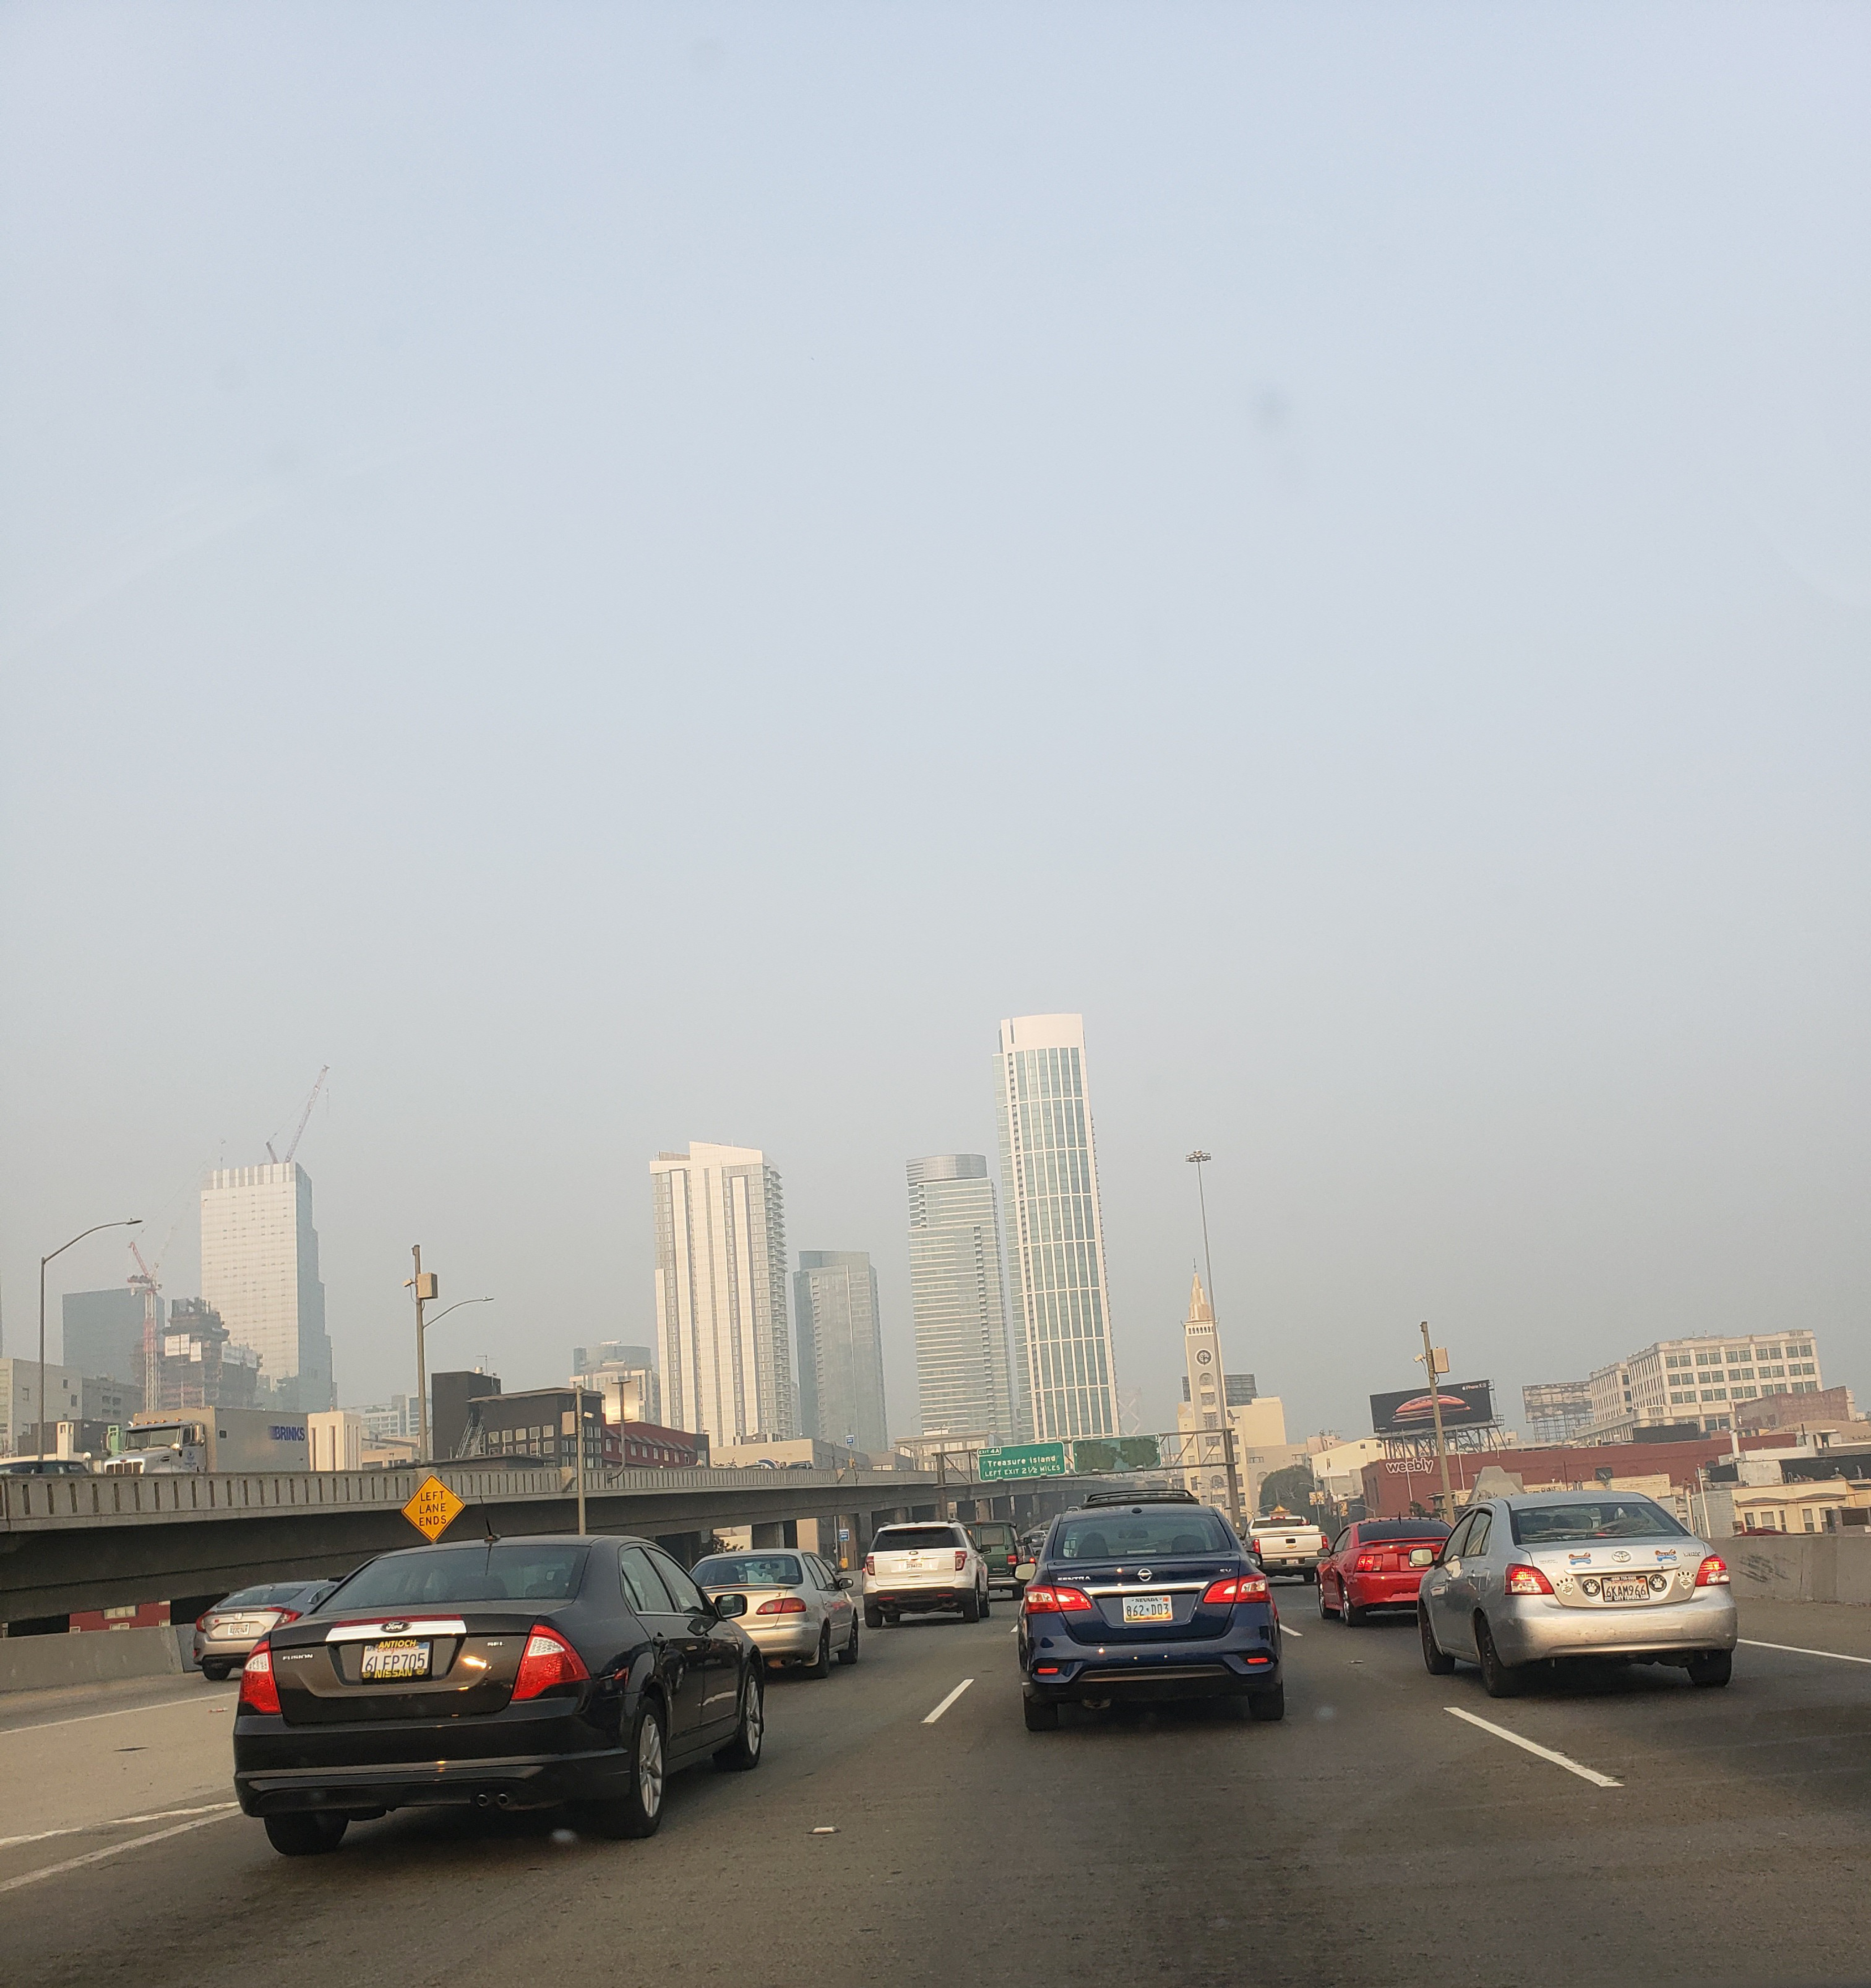 Gray smoke hovering over a series of high-rise buildings, with cars on the freeway below.